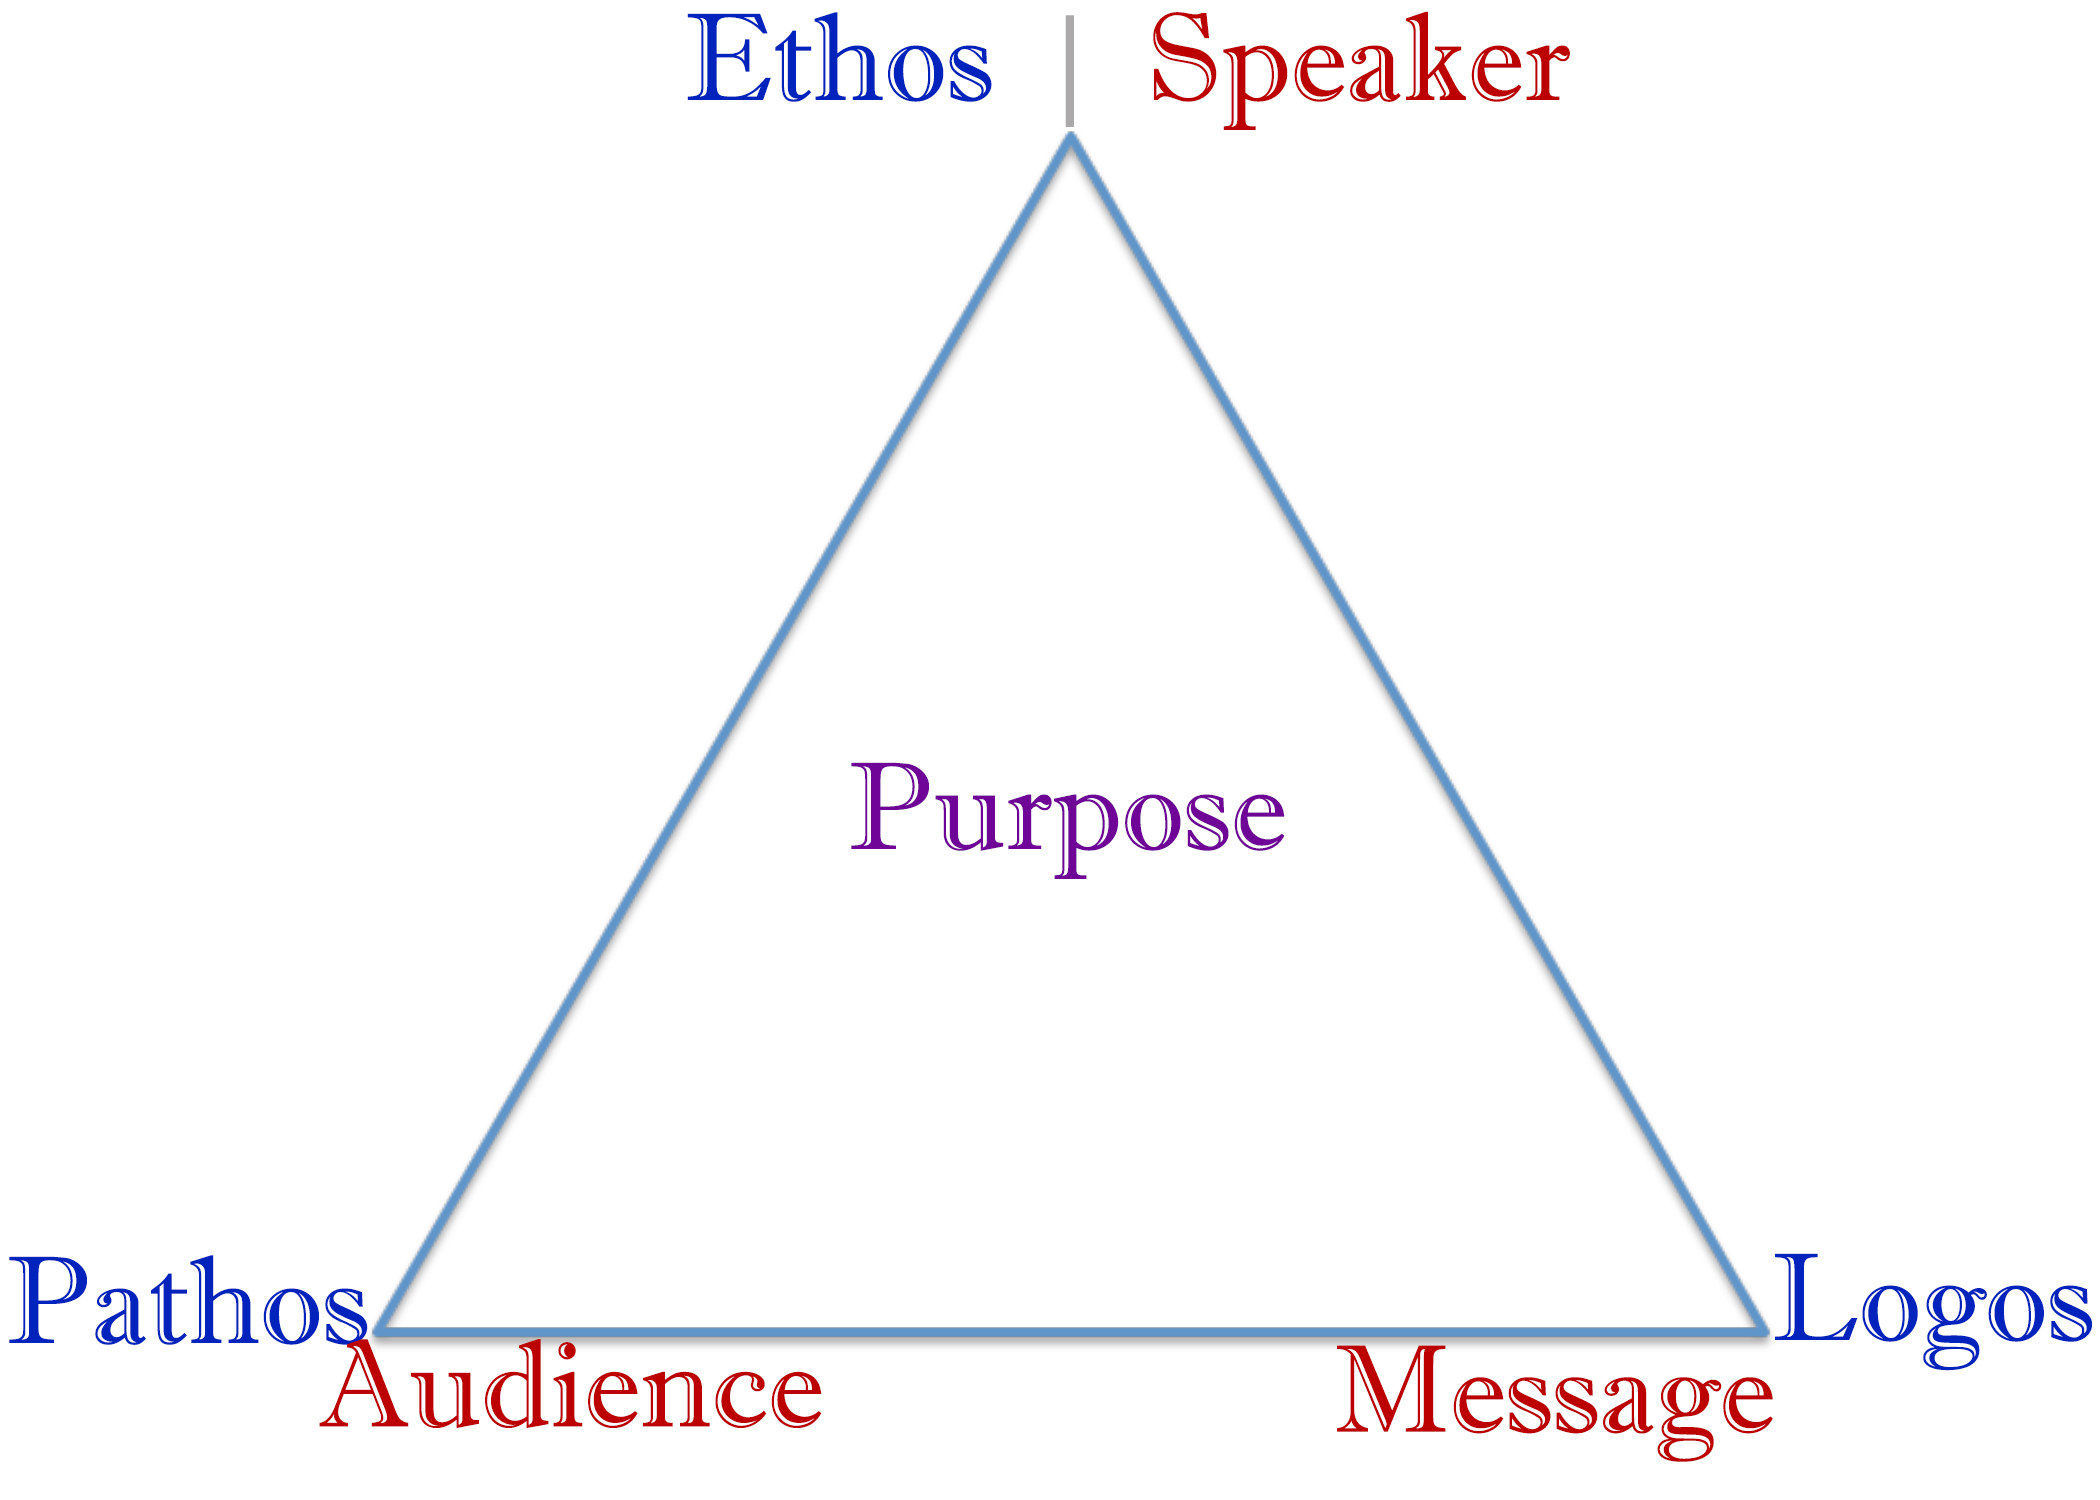 how to teach argument writing students should have been introduced to these concepts using the structured inquiry approach we discussed earlier and this triangle should serve as both a